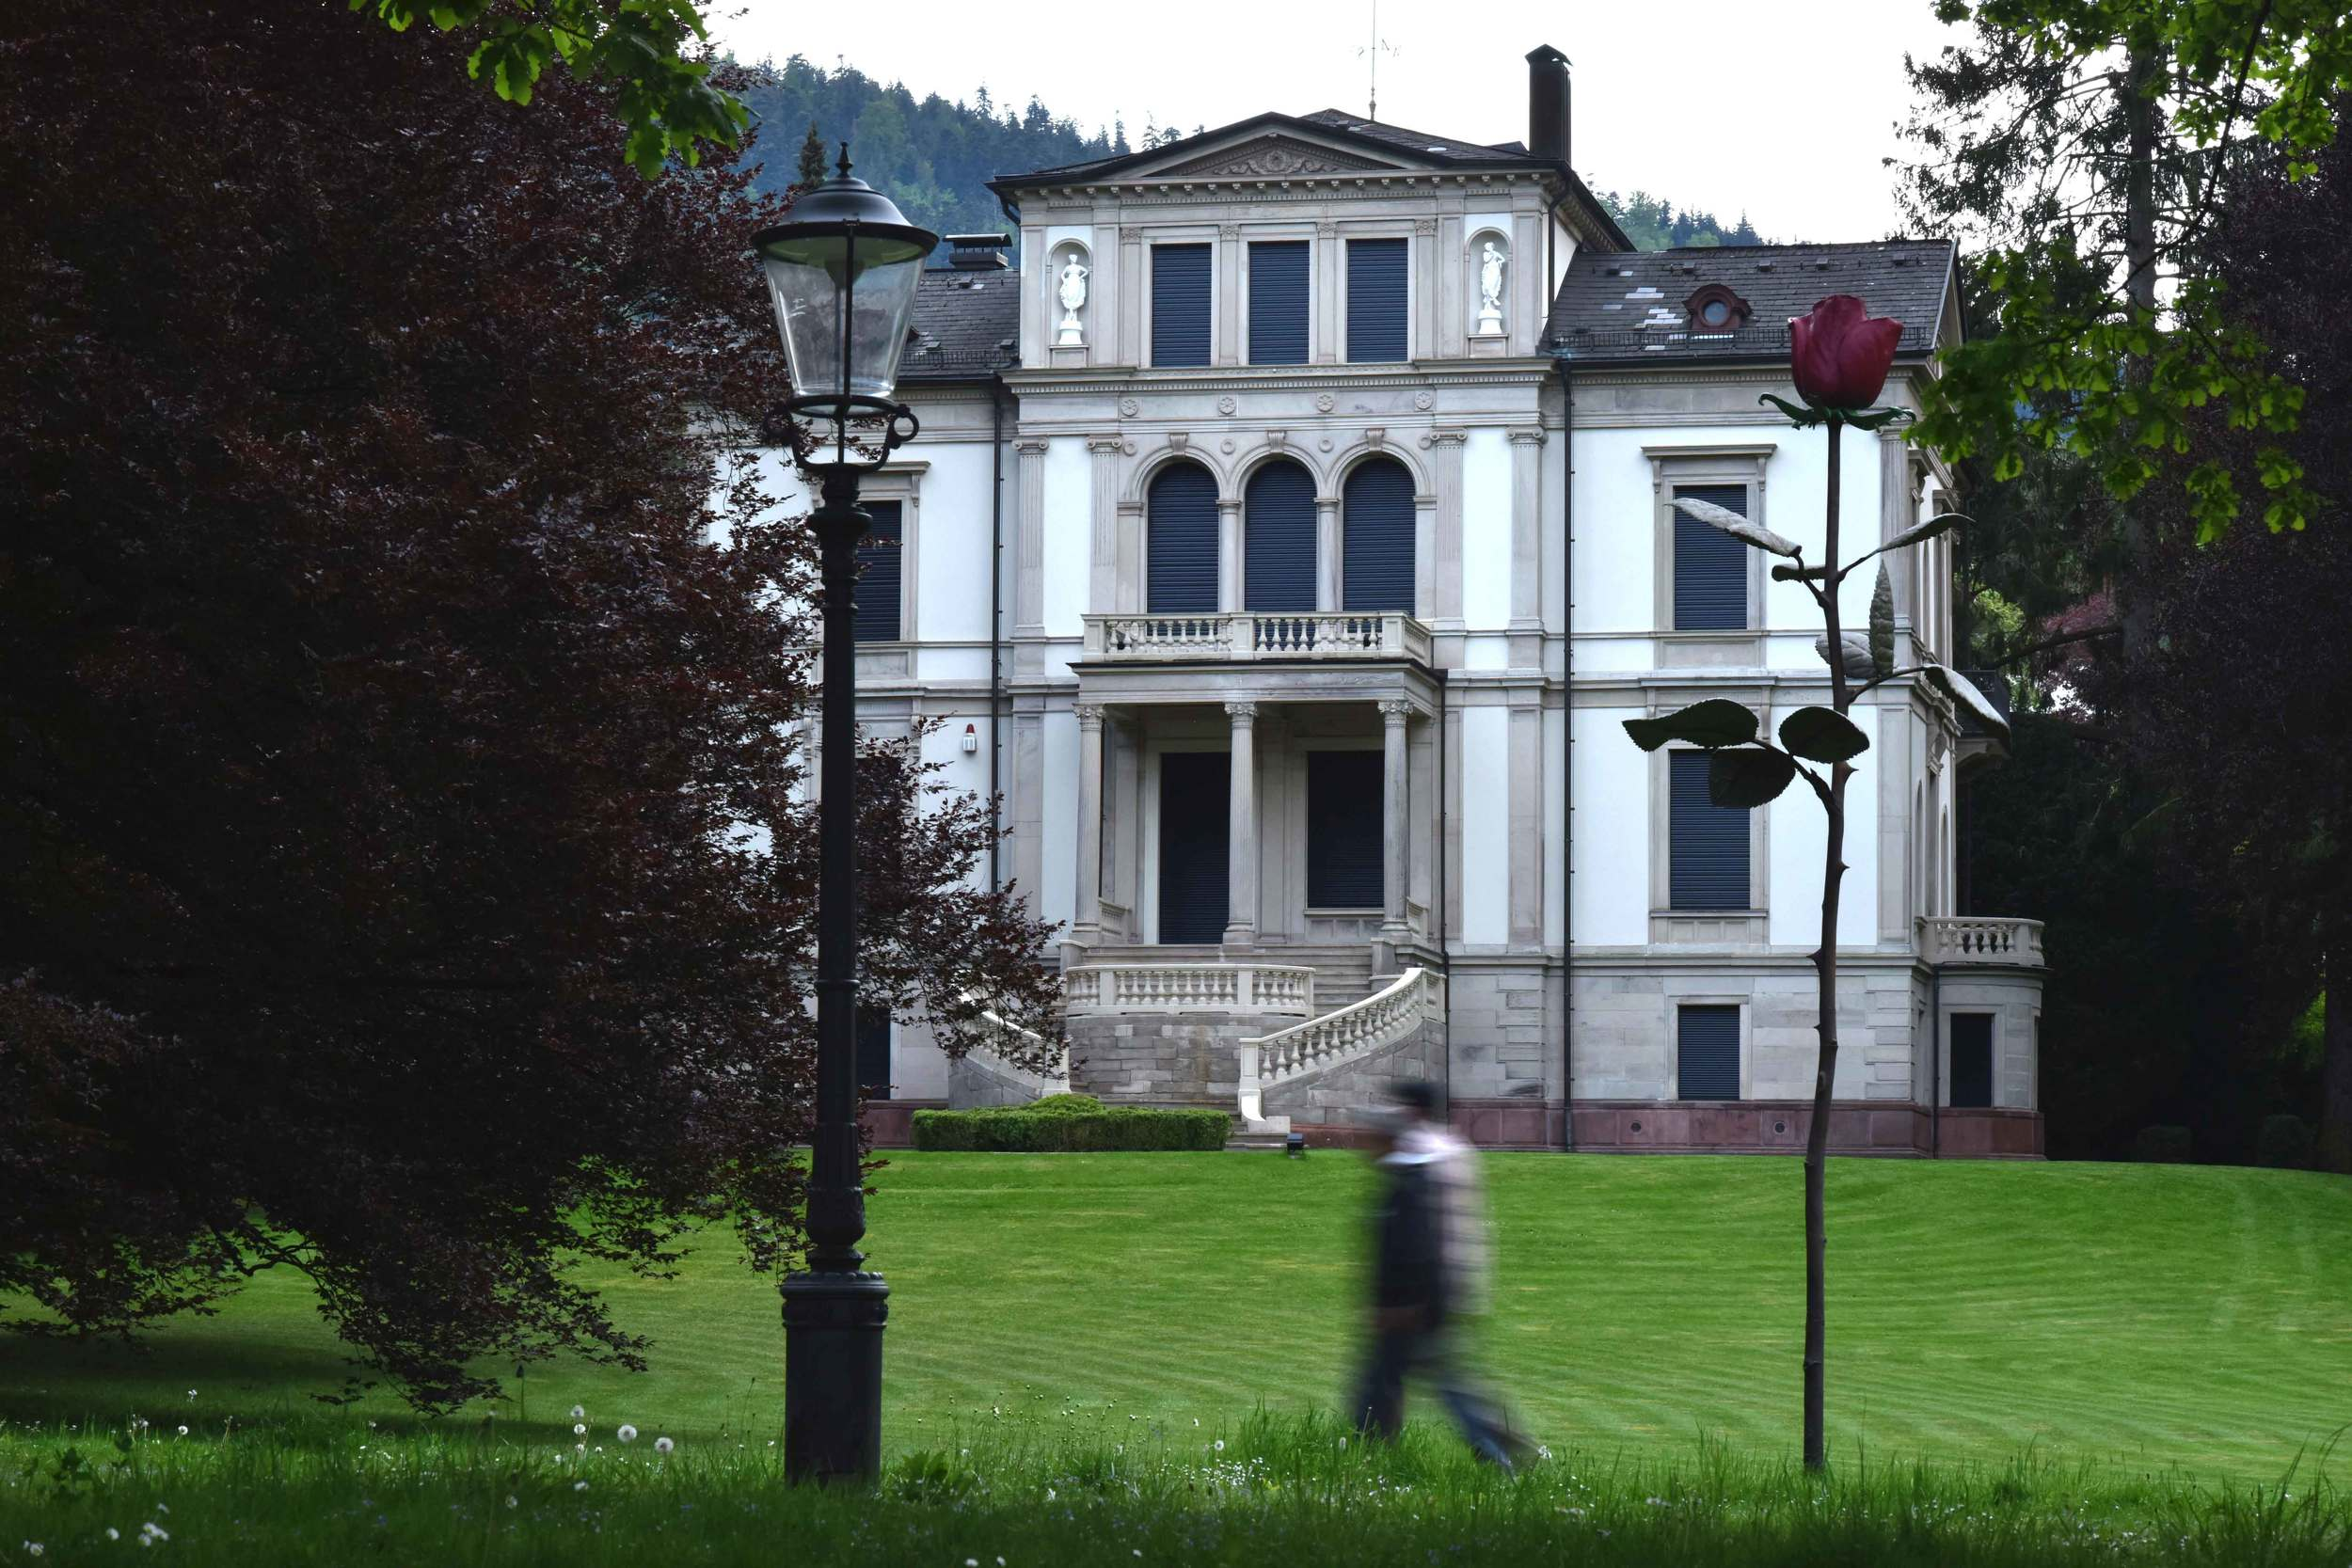 A mystical building, 18th century architecture, Baden Baden, Germany. Image©sourcingstyle.com